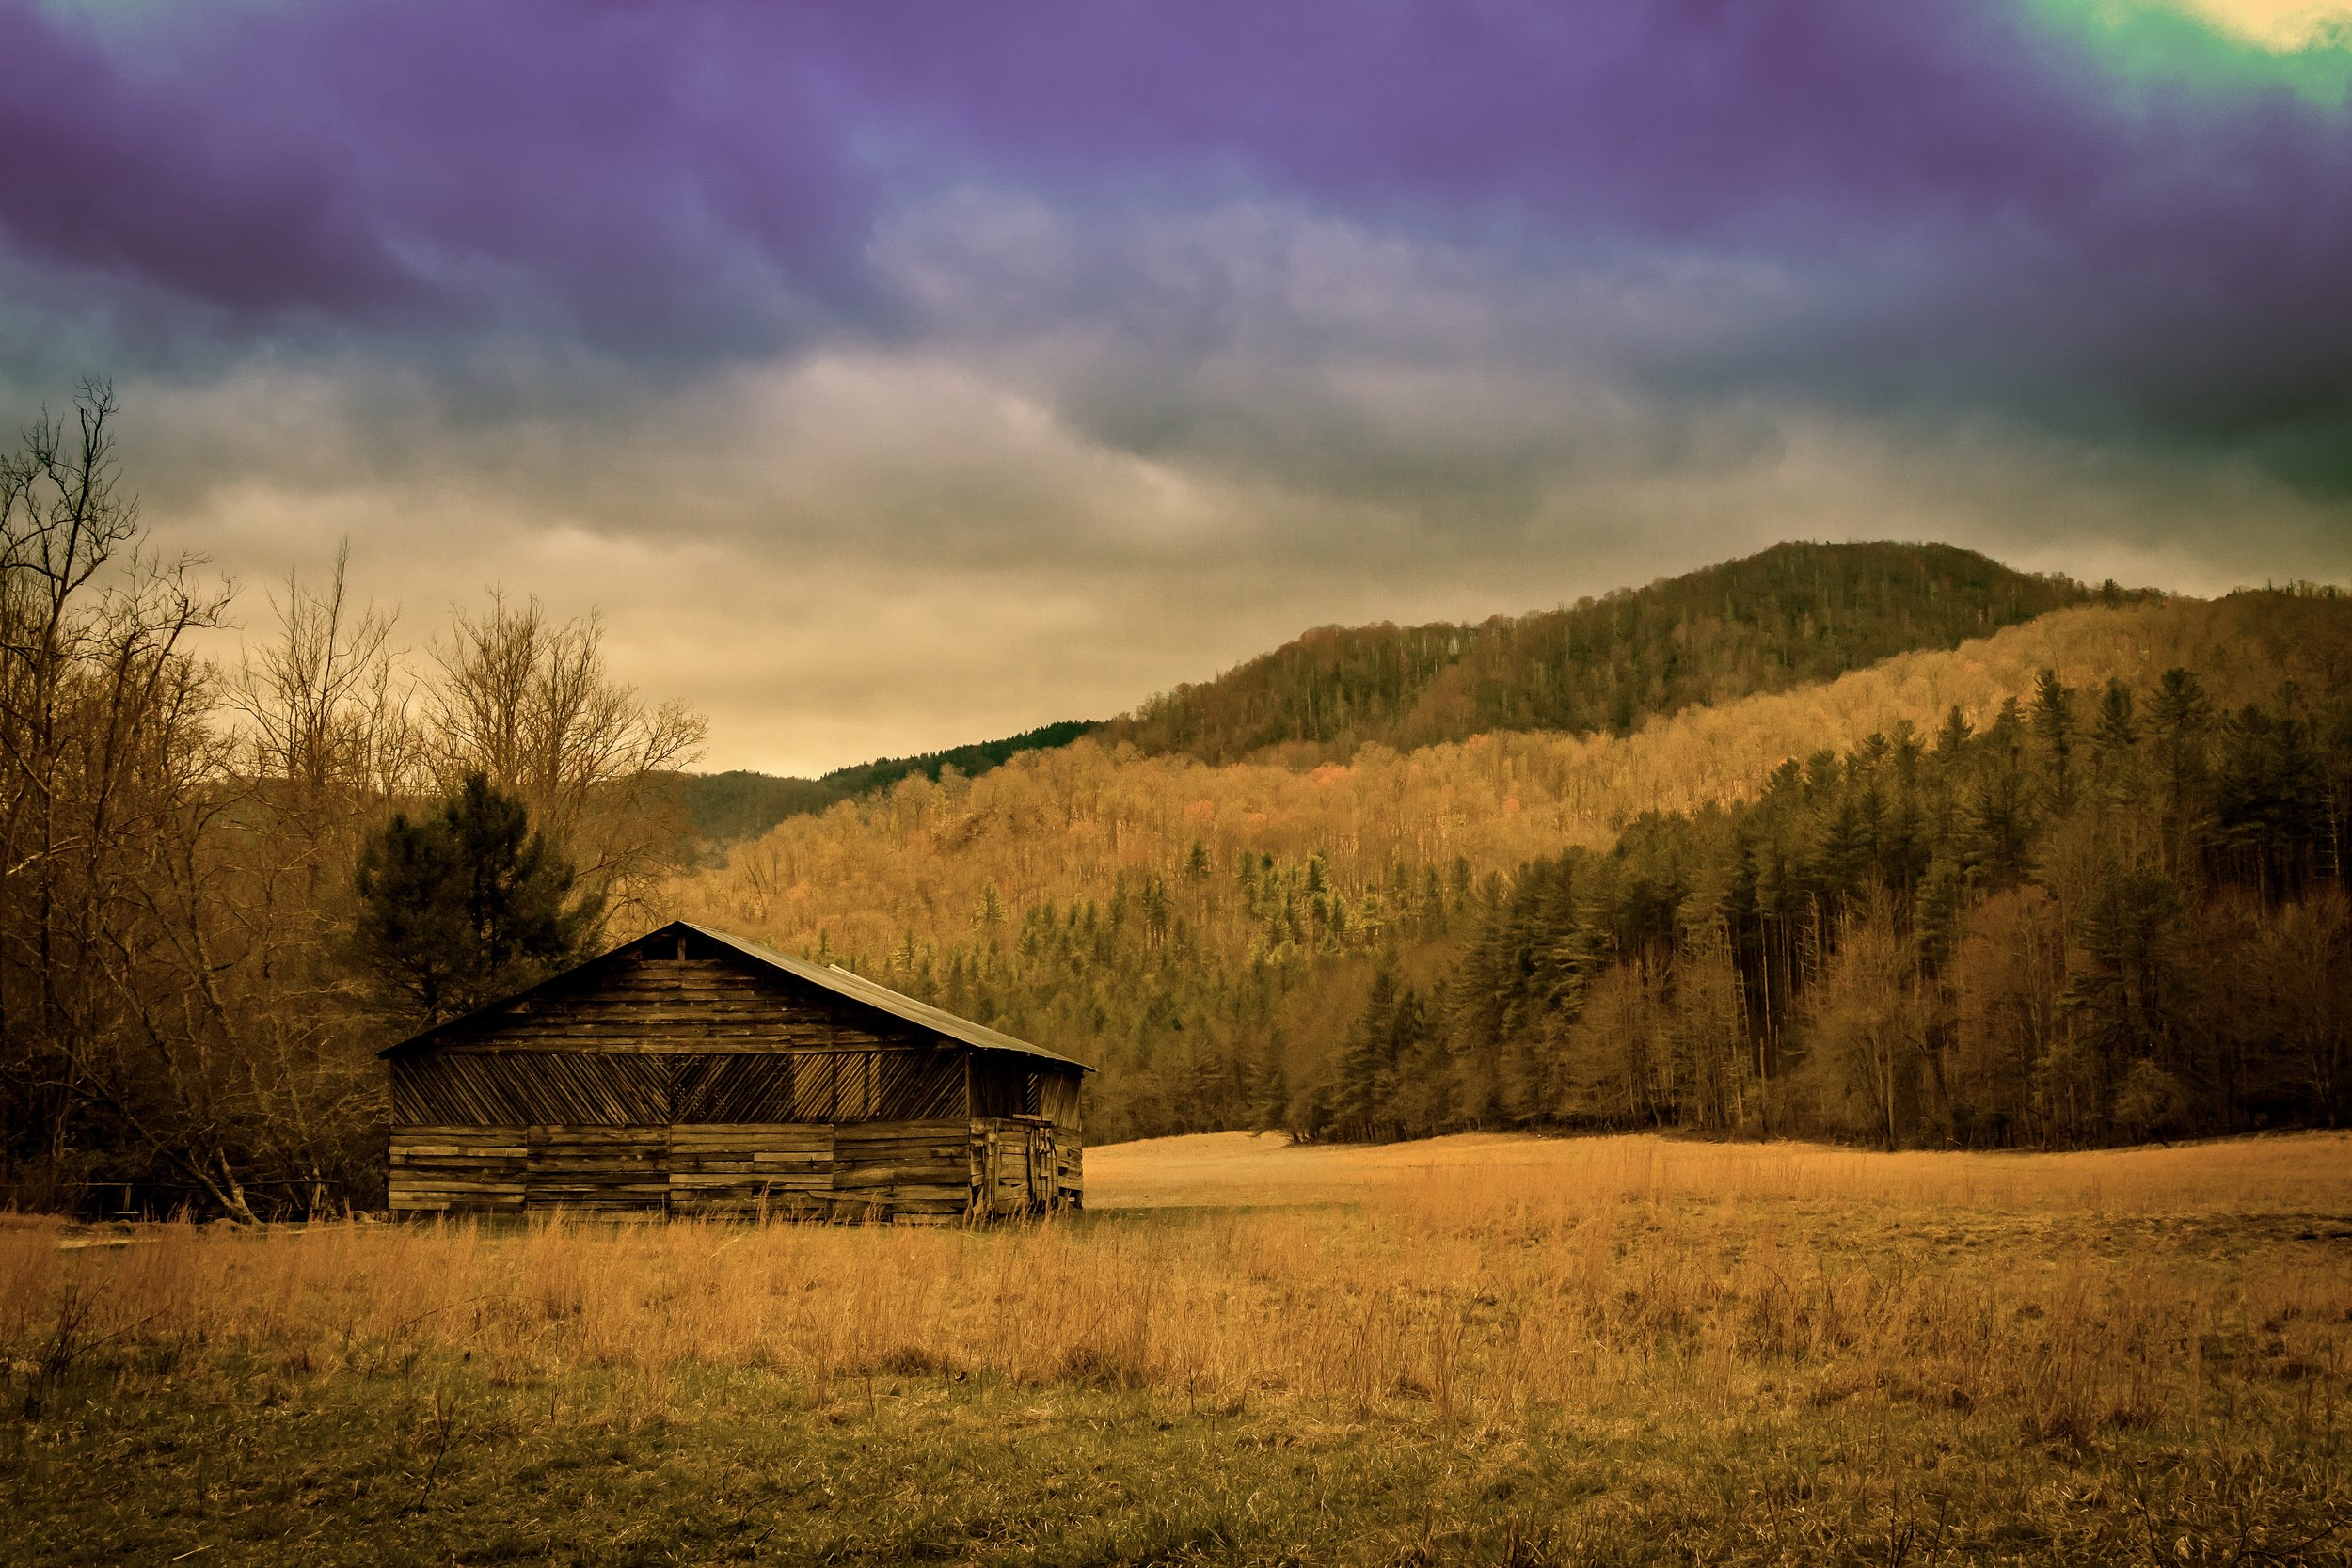 An abandoned barn off a rural road in the Great Smoky Mountains . It was taken with a Canon 7D and an EF-S 18-200 lens. F/8, 1/2,200, ISO 1600, 35mm. Edited in Lightroom.